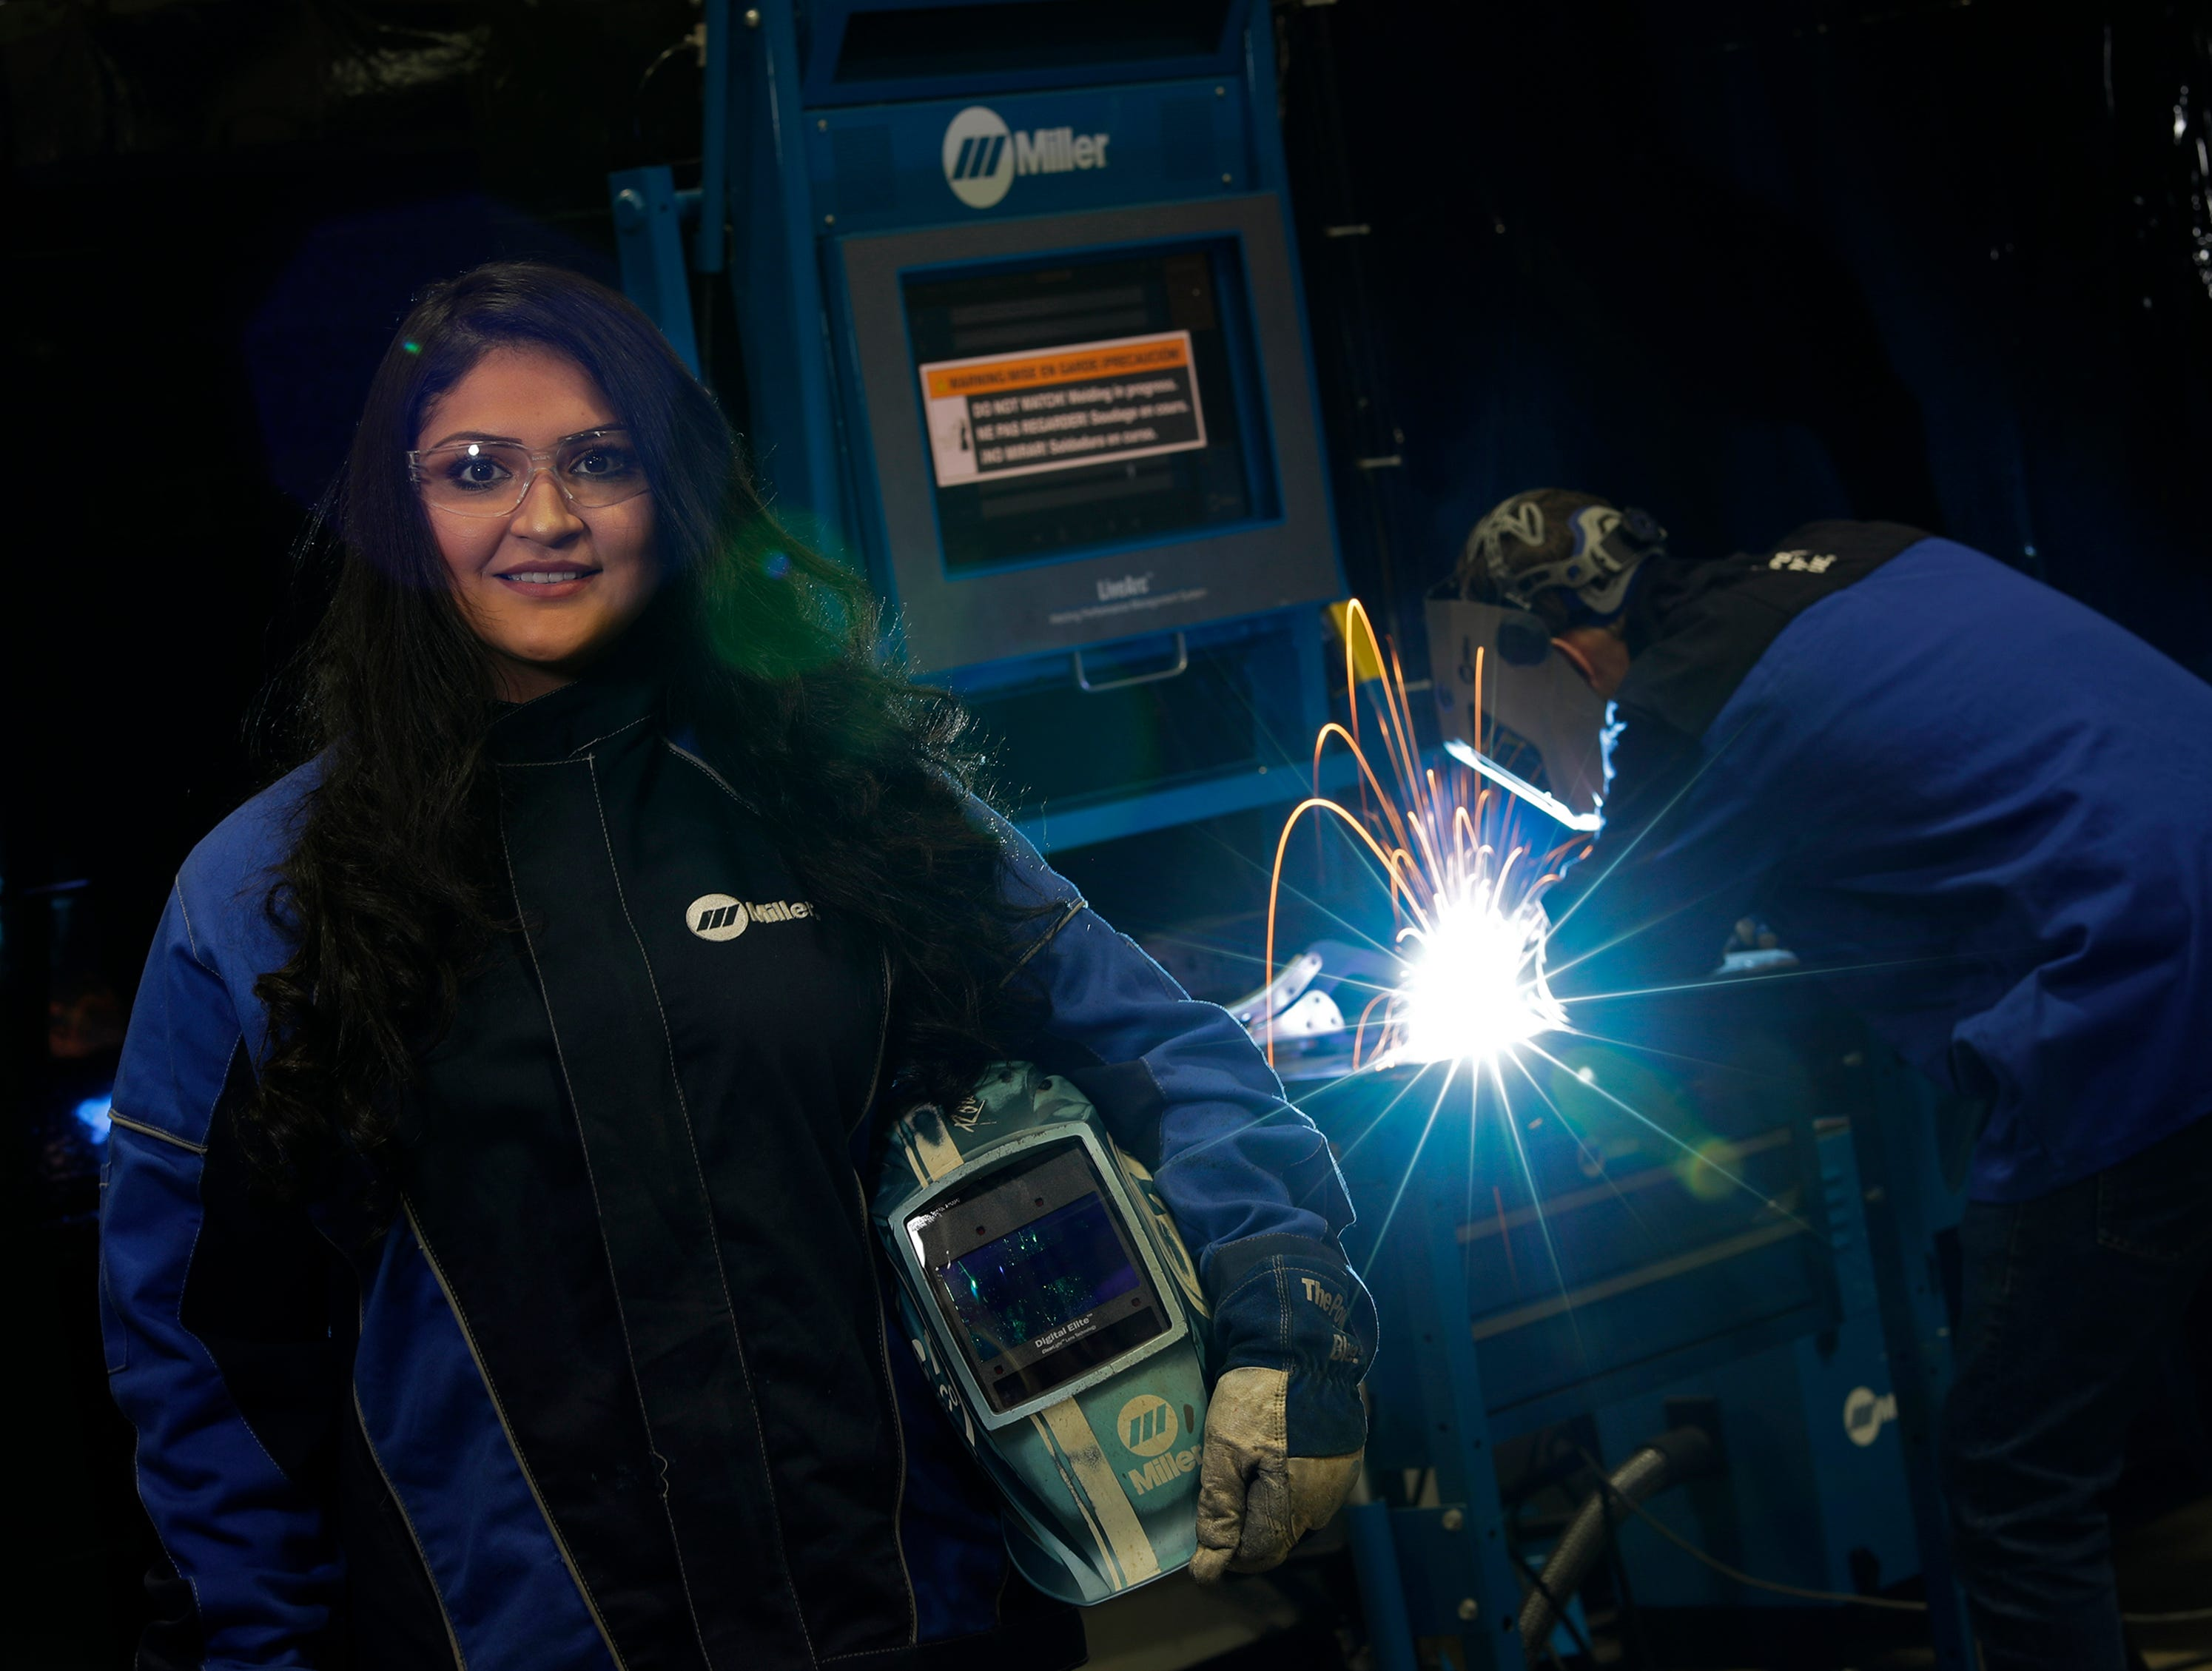 Fox Valley Technical College student Olivia Arreola is the first person to graduate after benefitting from the school's Promise program. She is currently interning at Miller Electric and is pictured here Wednesday, December 12, 2018, in Appleton, Wis. 